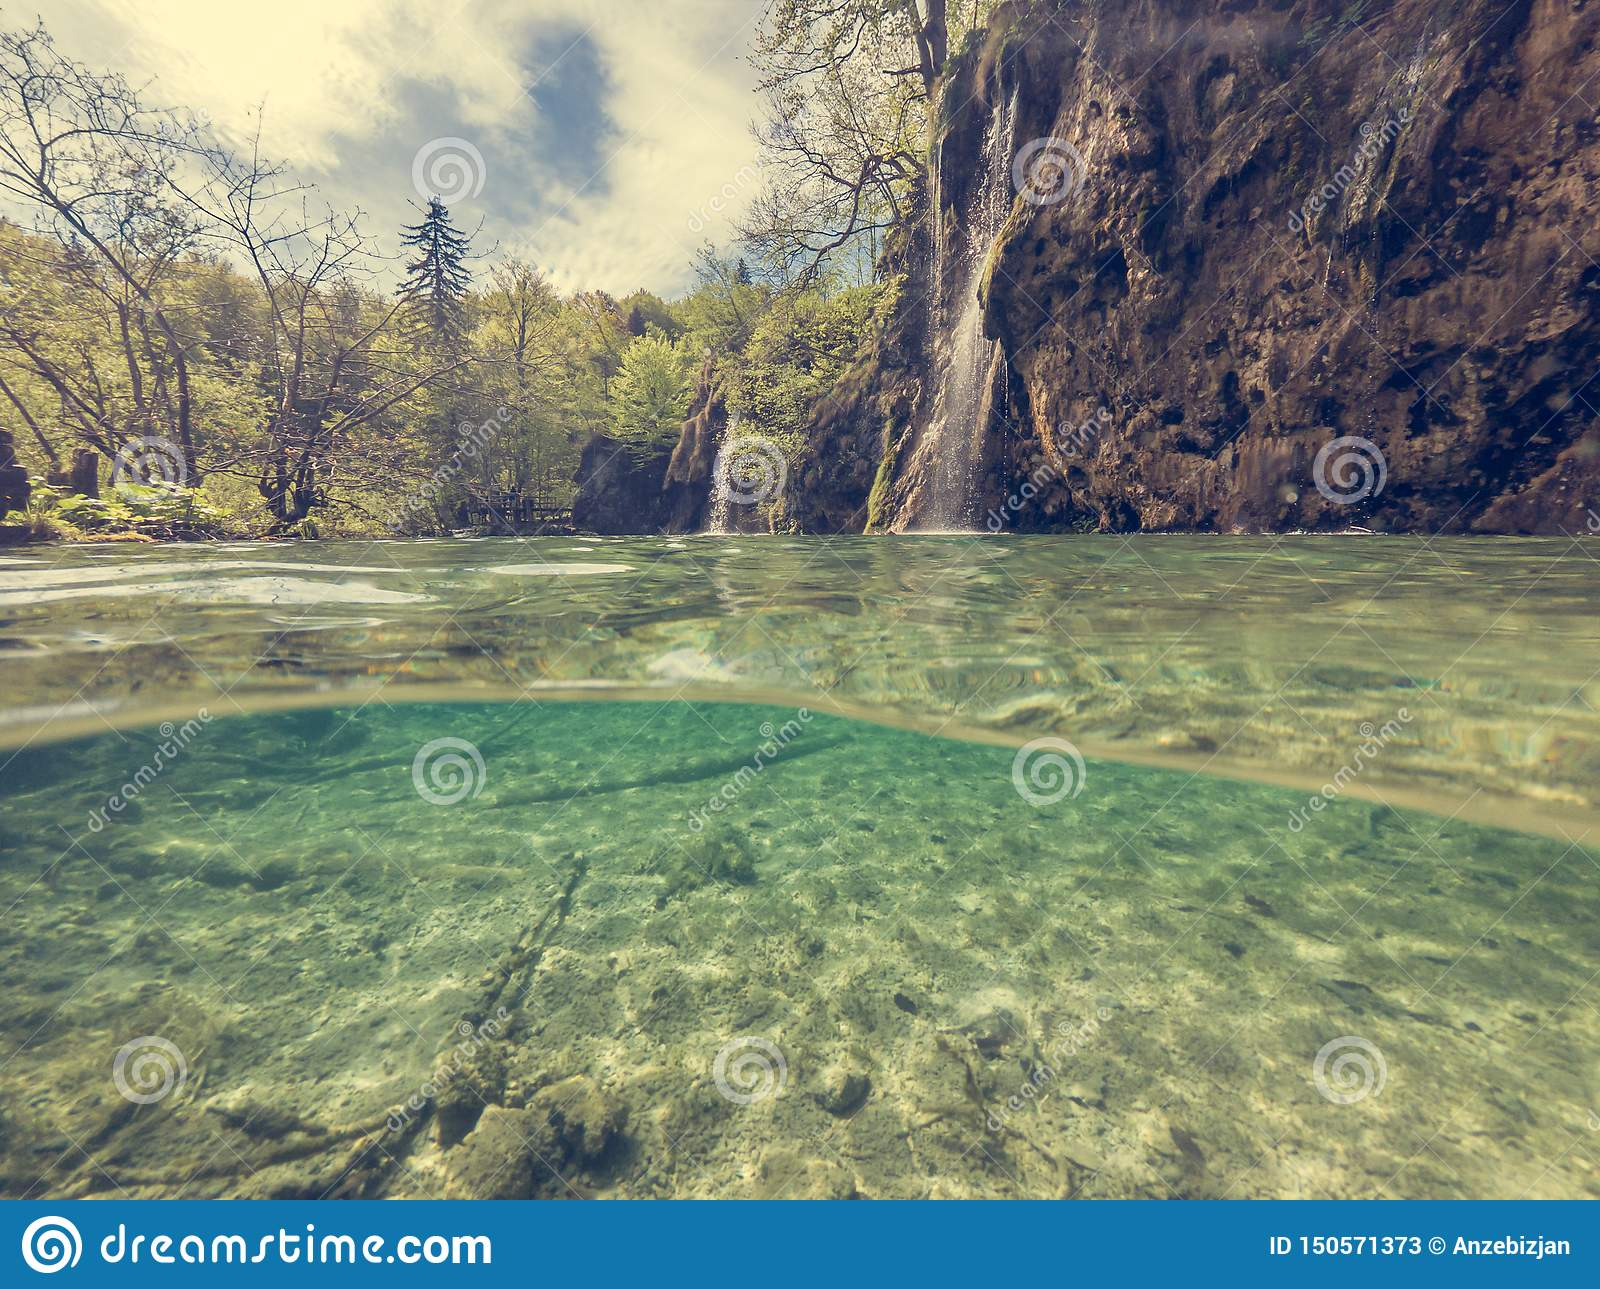 Amazing Split View Of Lake With Sunken Tree Trunk And